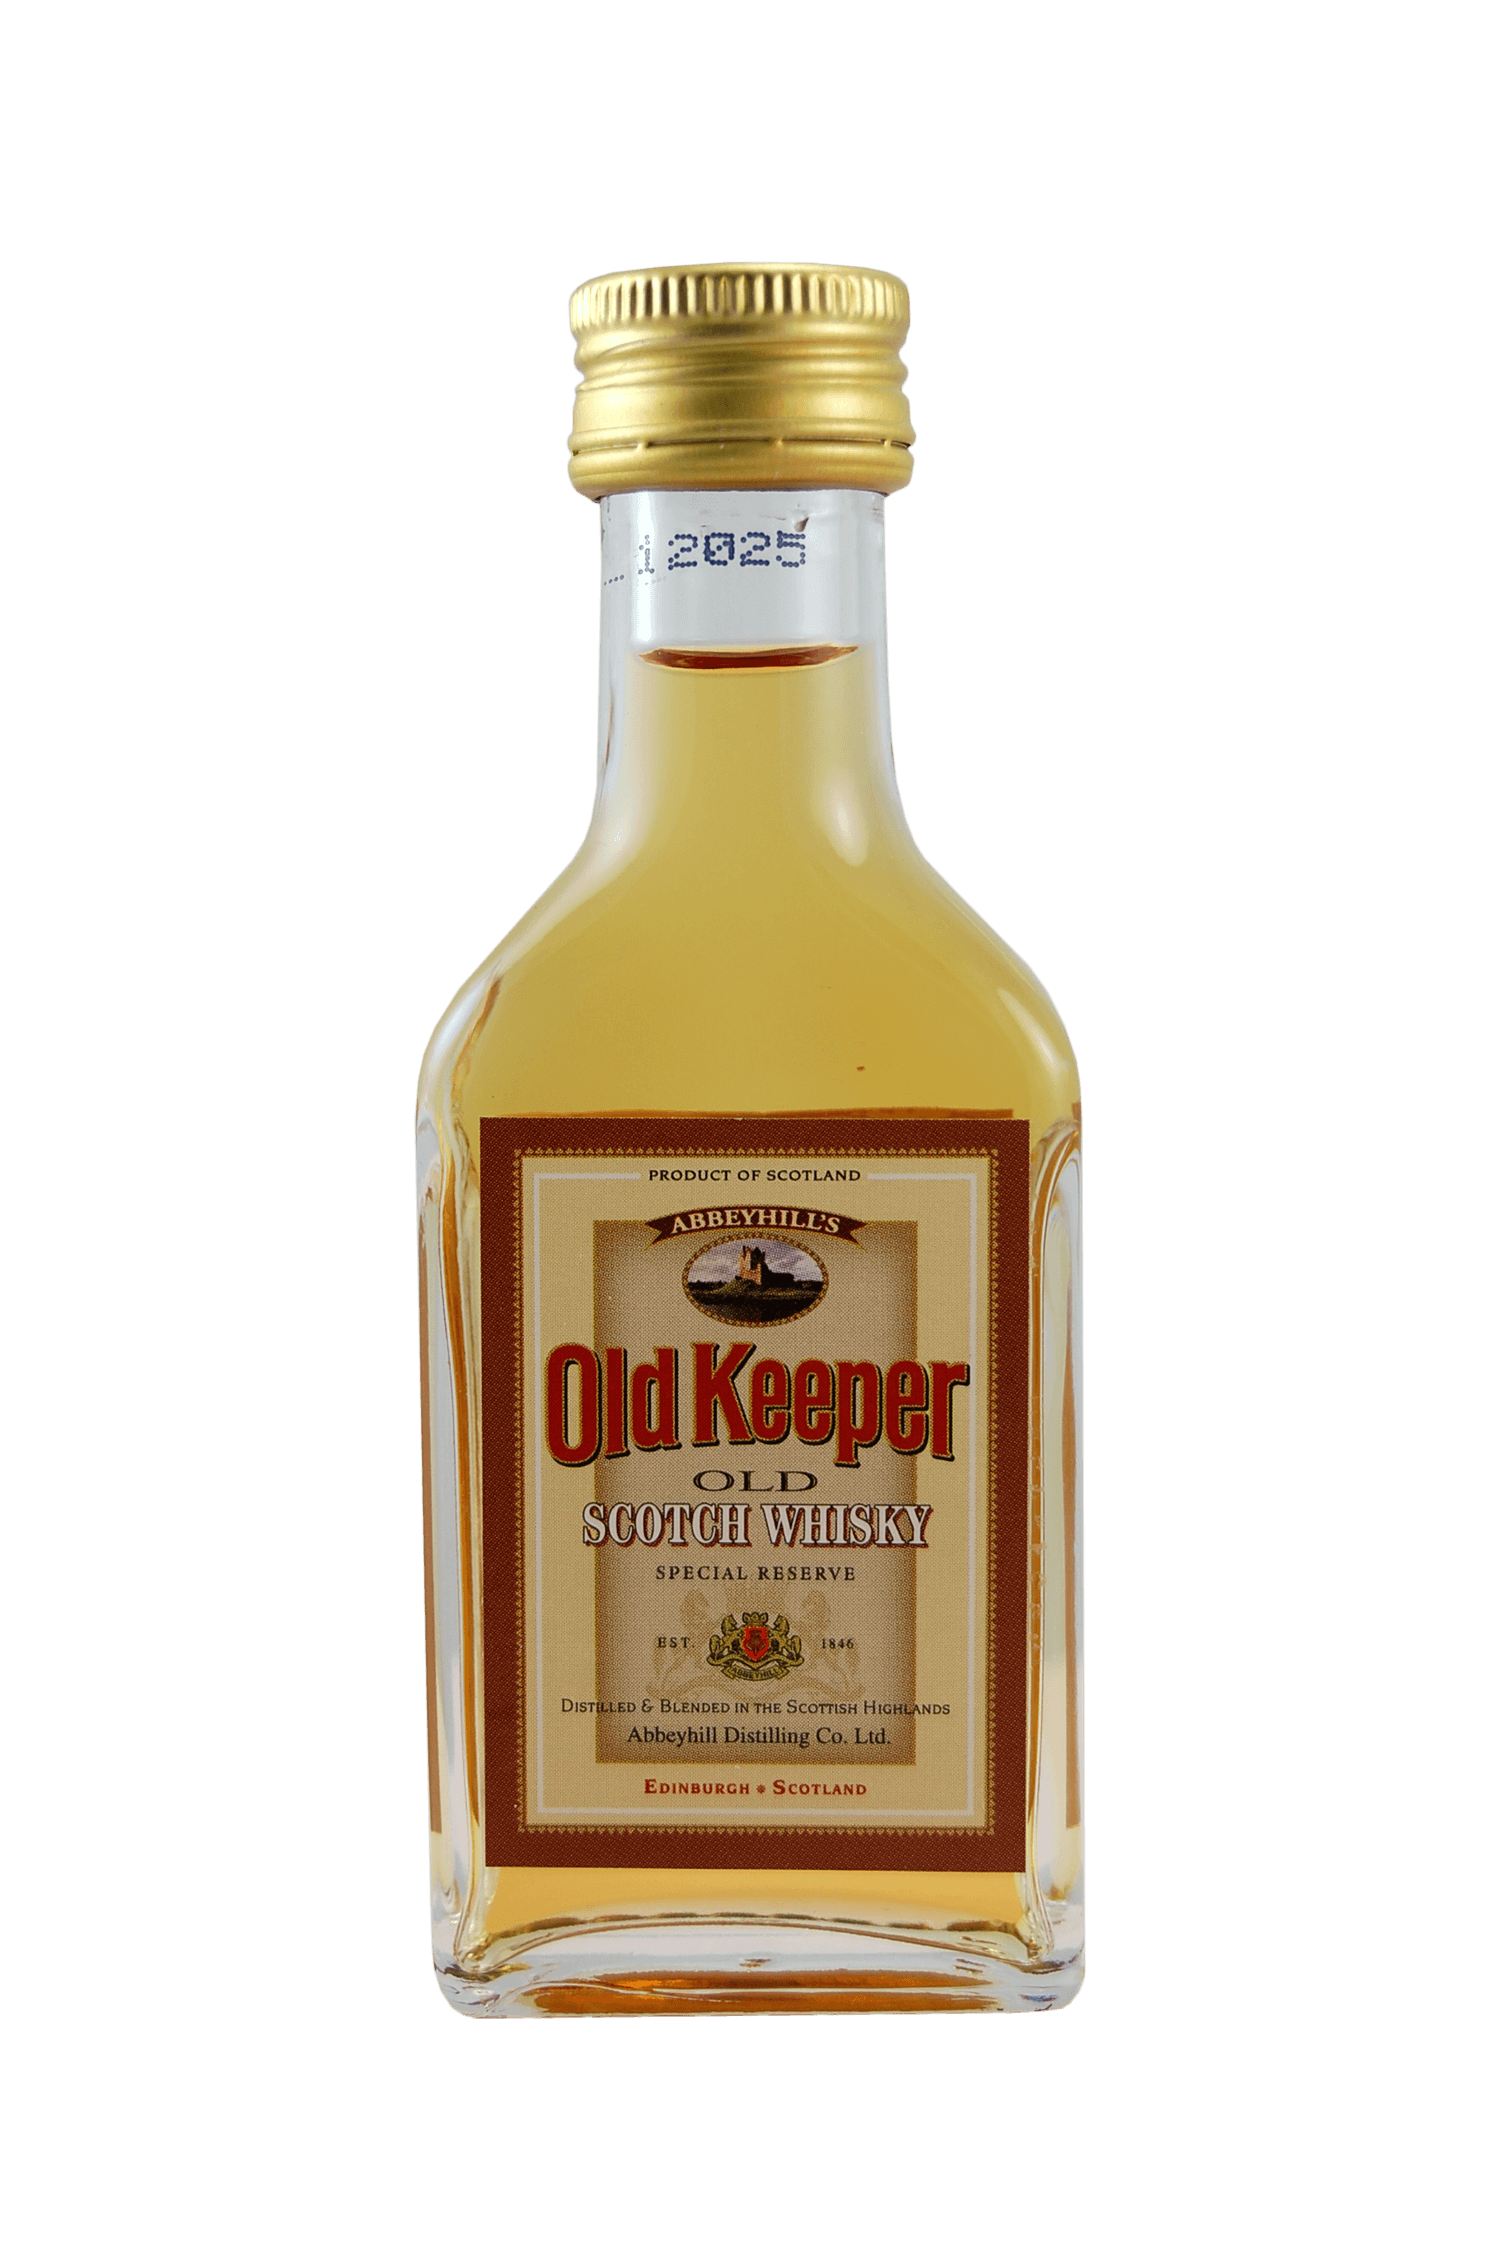 Old Keeper Scotch Whisky